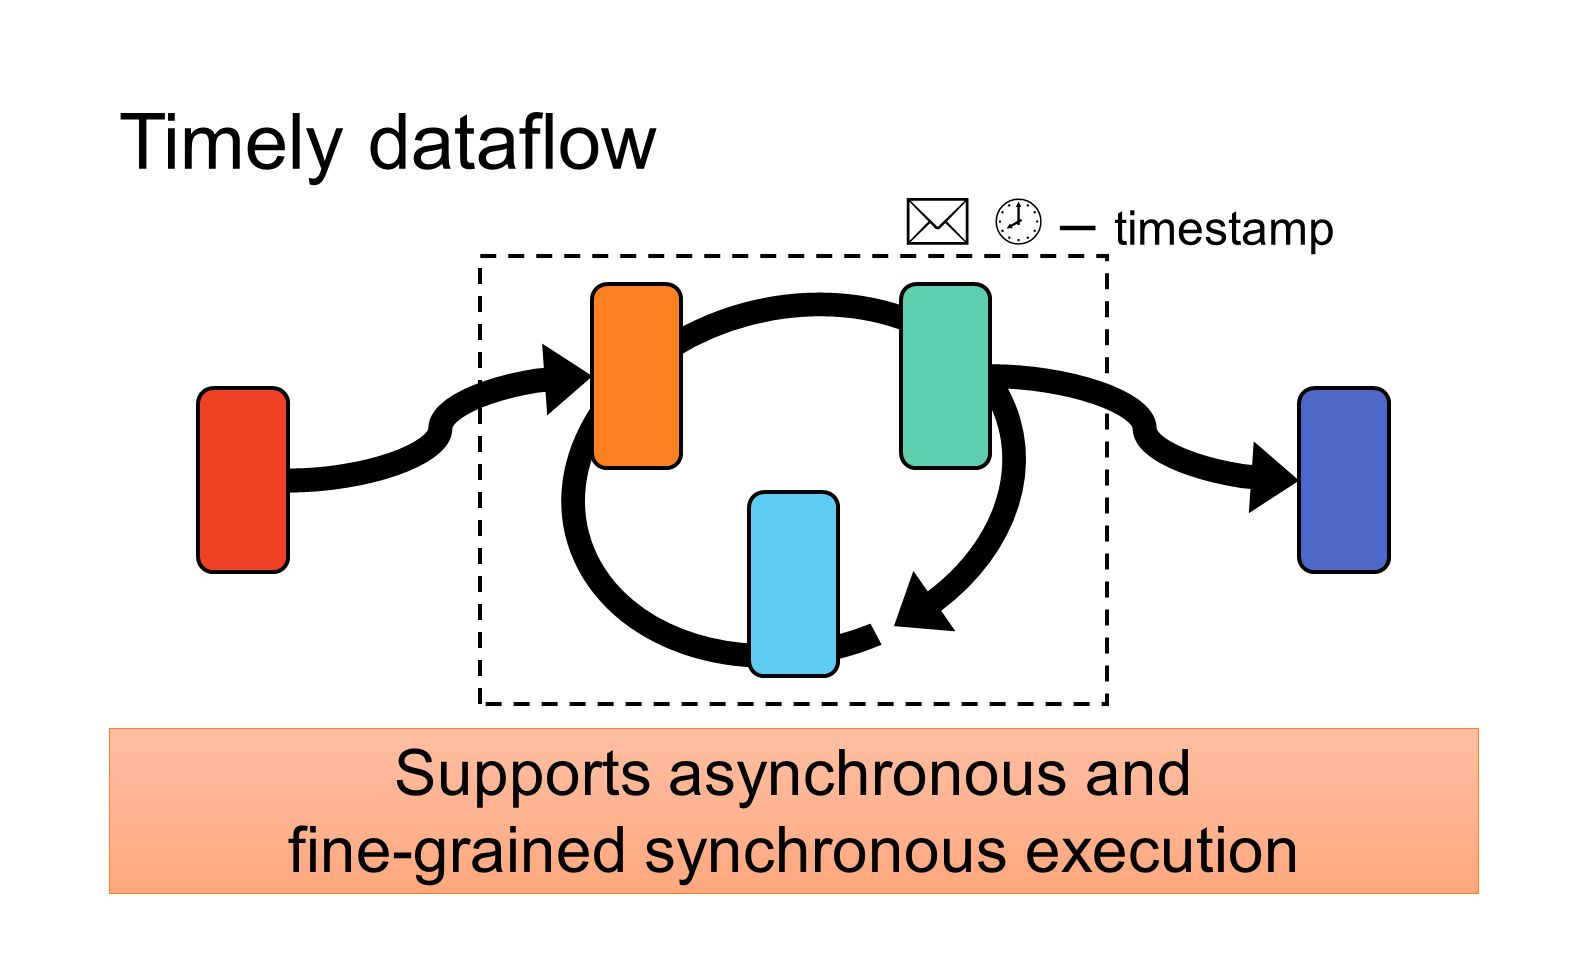 Supports asynchronous and fine-grained synchronous execution